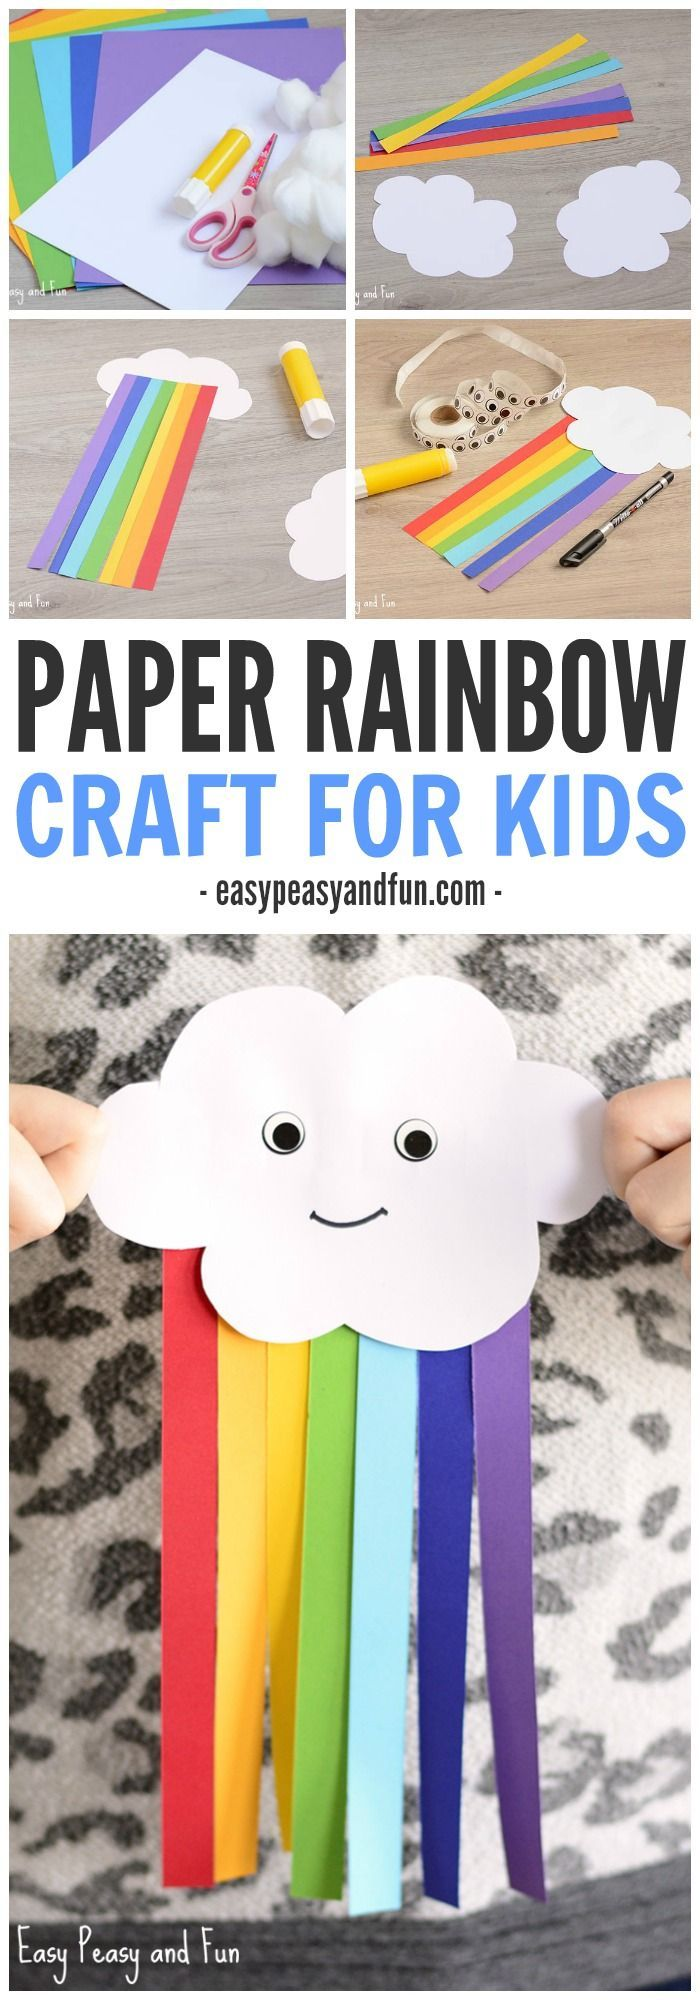 Mr. Happy cloud is here to play! This sweet cloud and paper rainbow craft for kids is a great spring project! - more at megacutie.co.uk